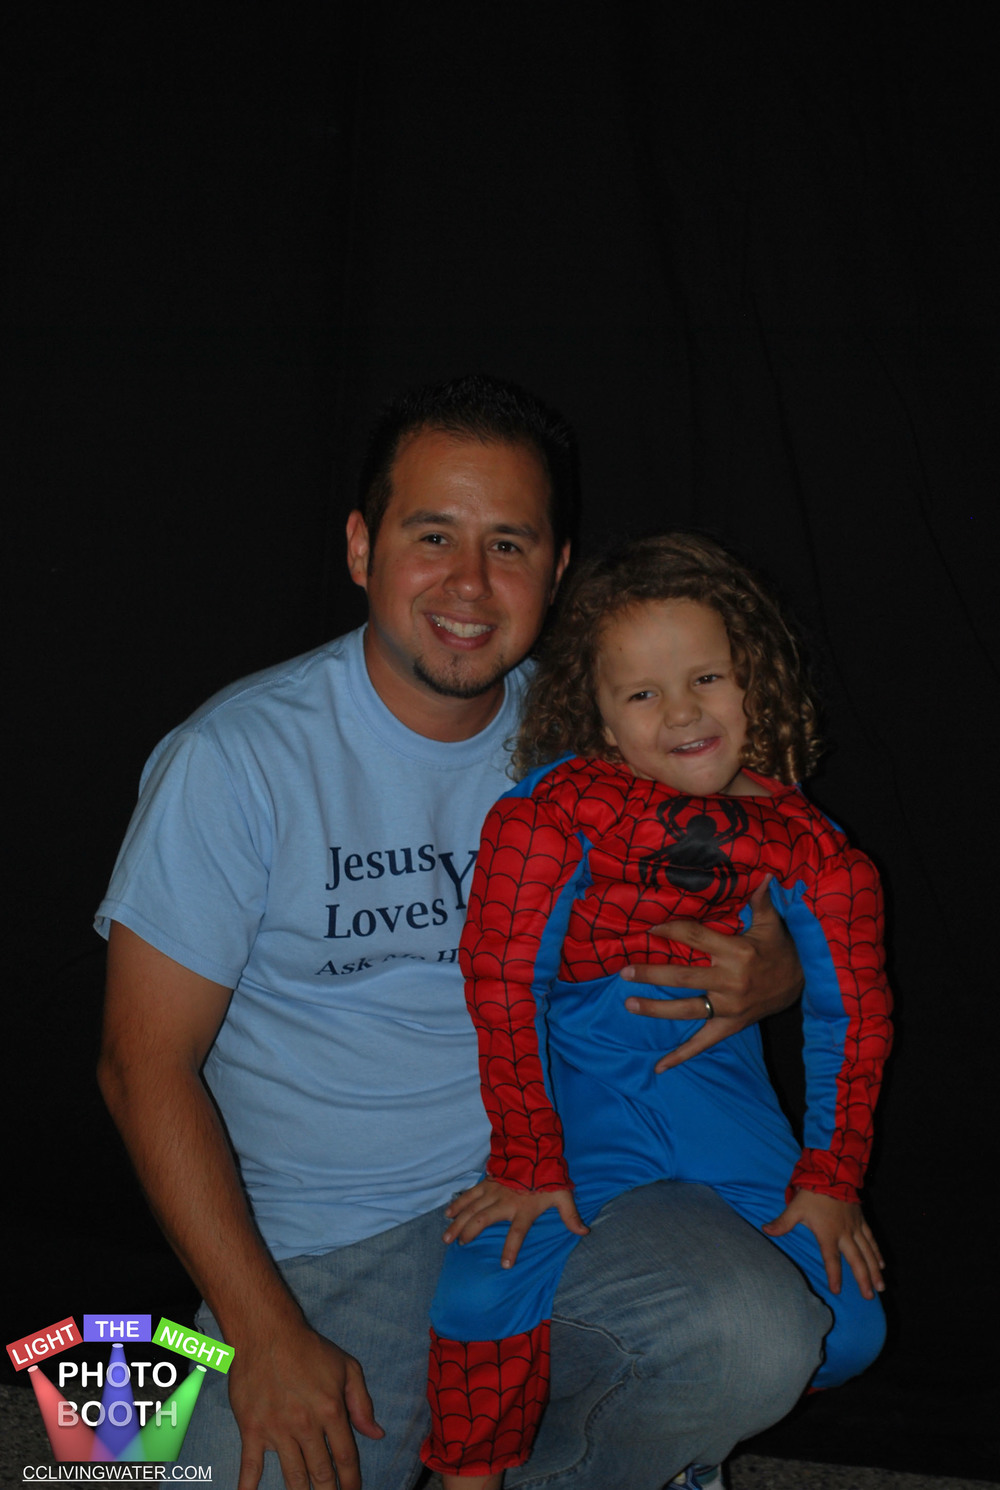 2014-10 - Light The Night Photo Booth (271) copy.jpg